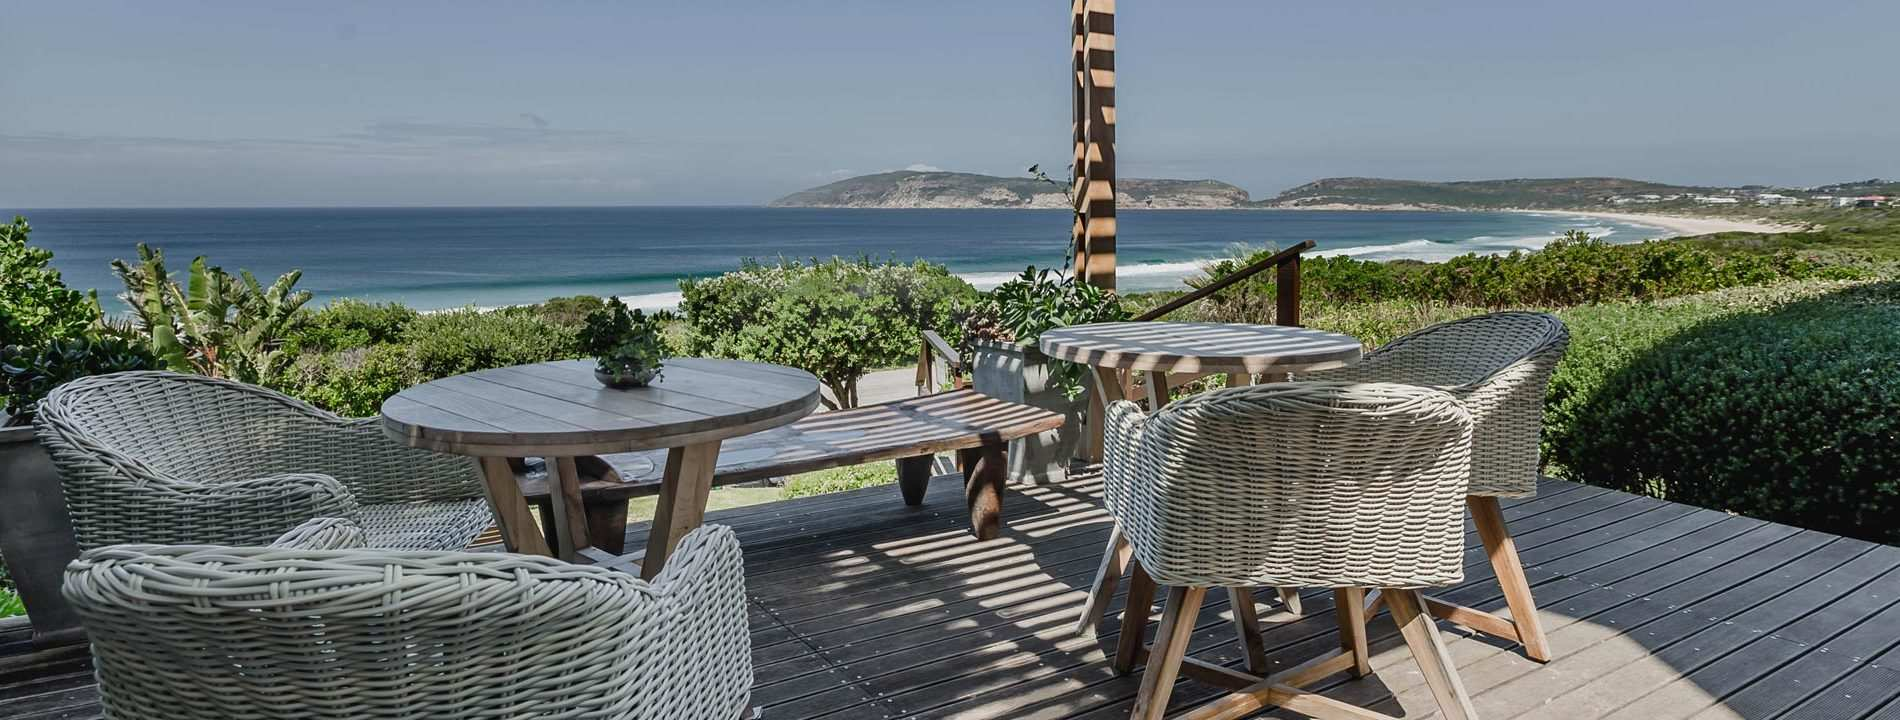 Plettenberg Bay Beach Accommodation Garden Route South Africa The Robberg